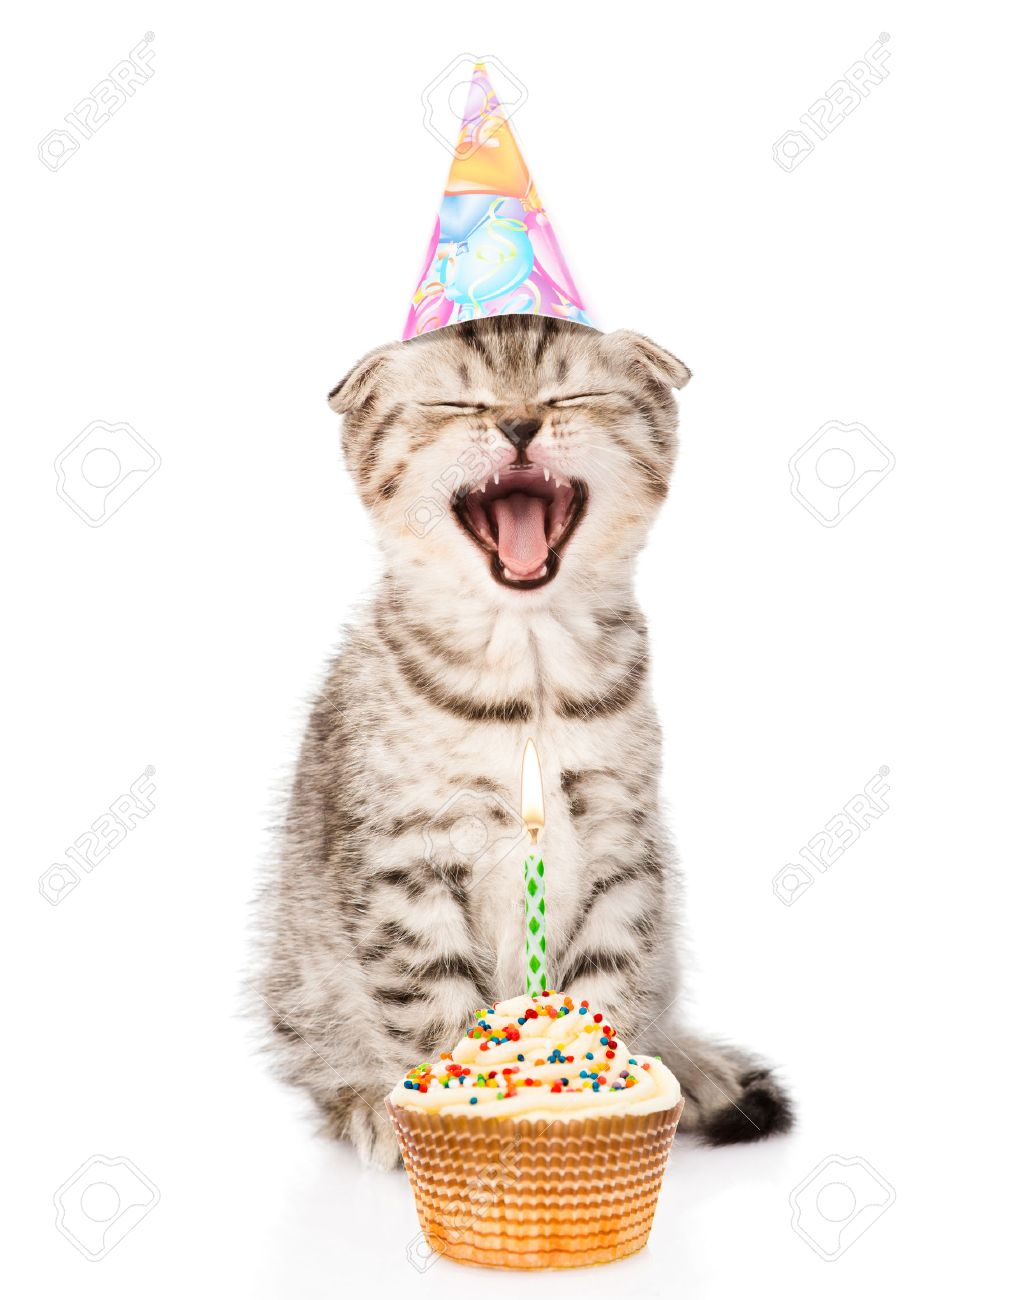 Laughing Cat With Birthday Hat And Cake Isolated On White Background Stock Photo